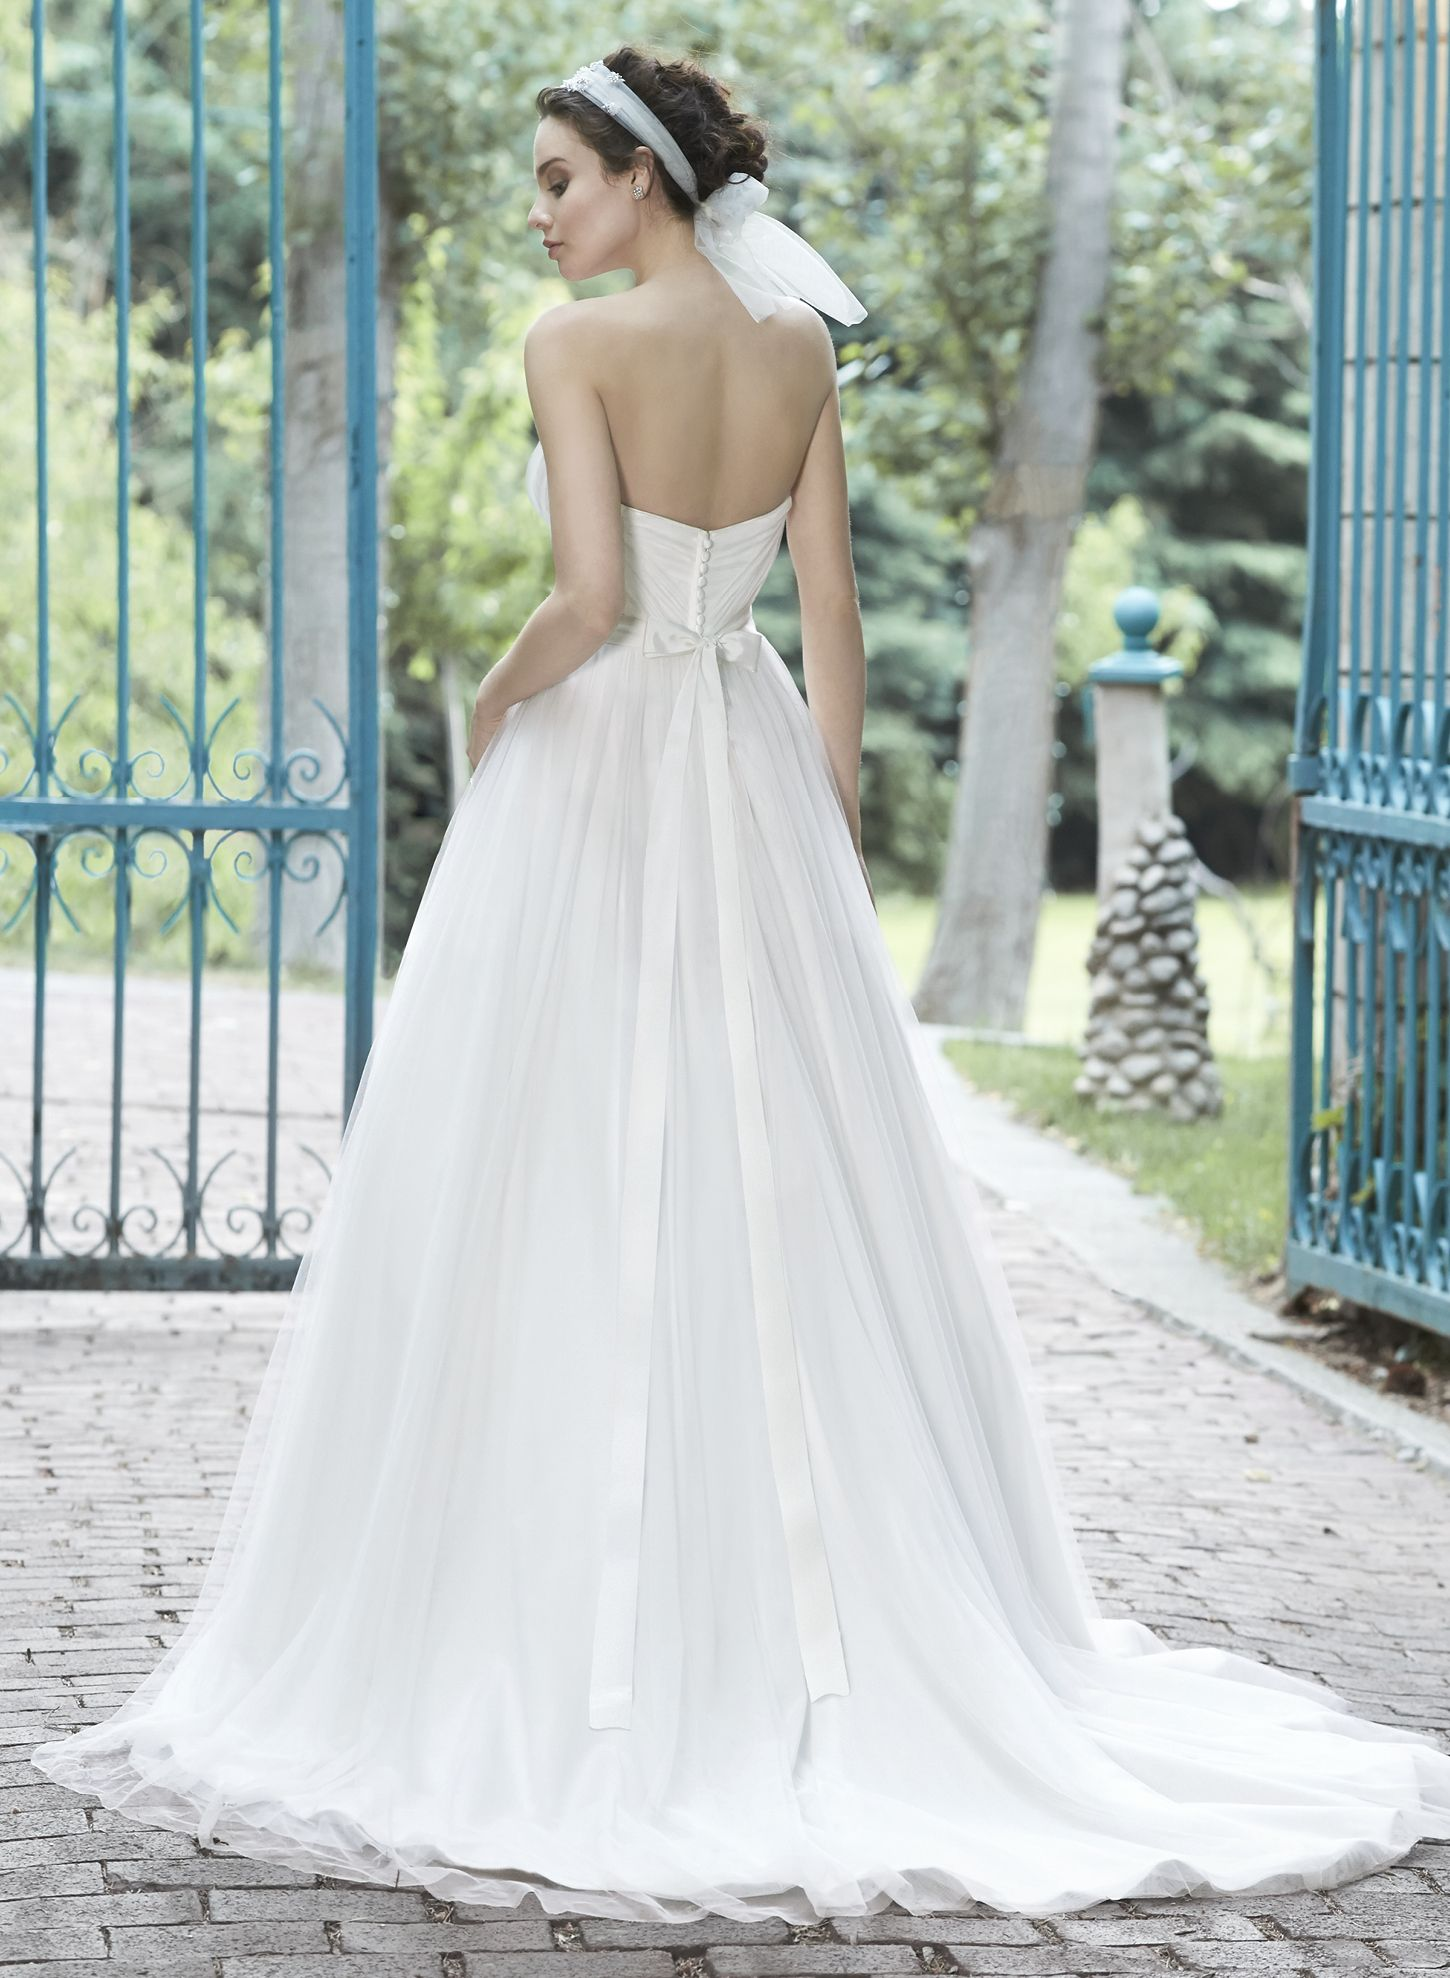 Maggie Sottero Wedding Dresses | Maggie sottero, Bridal boutique and ...